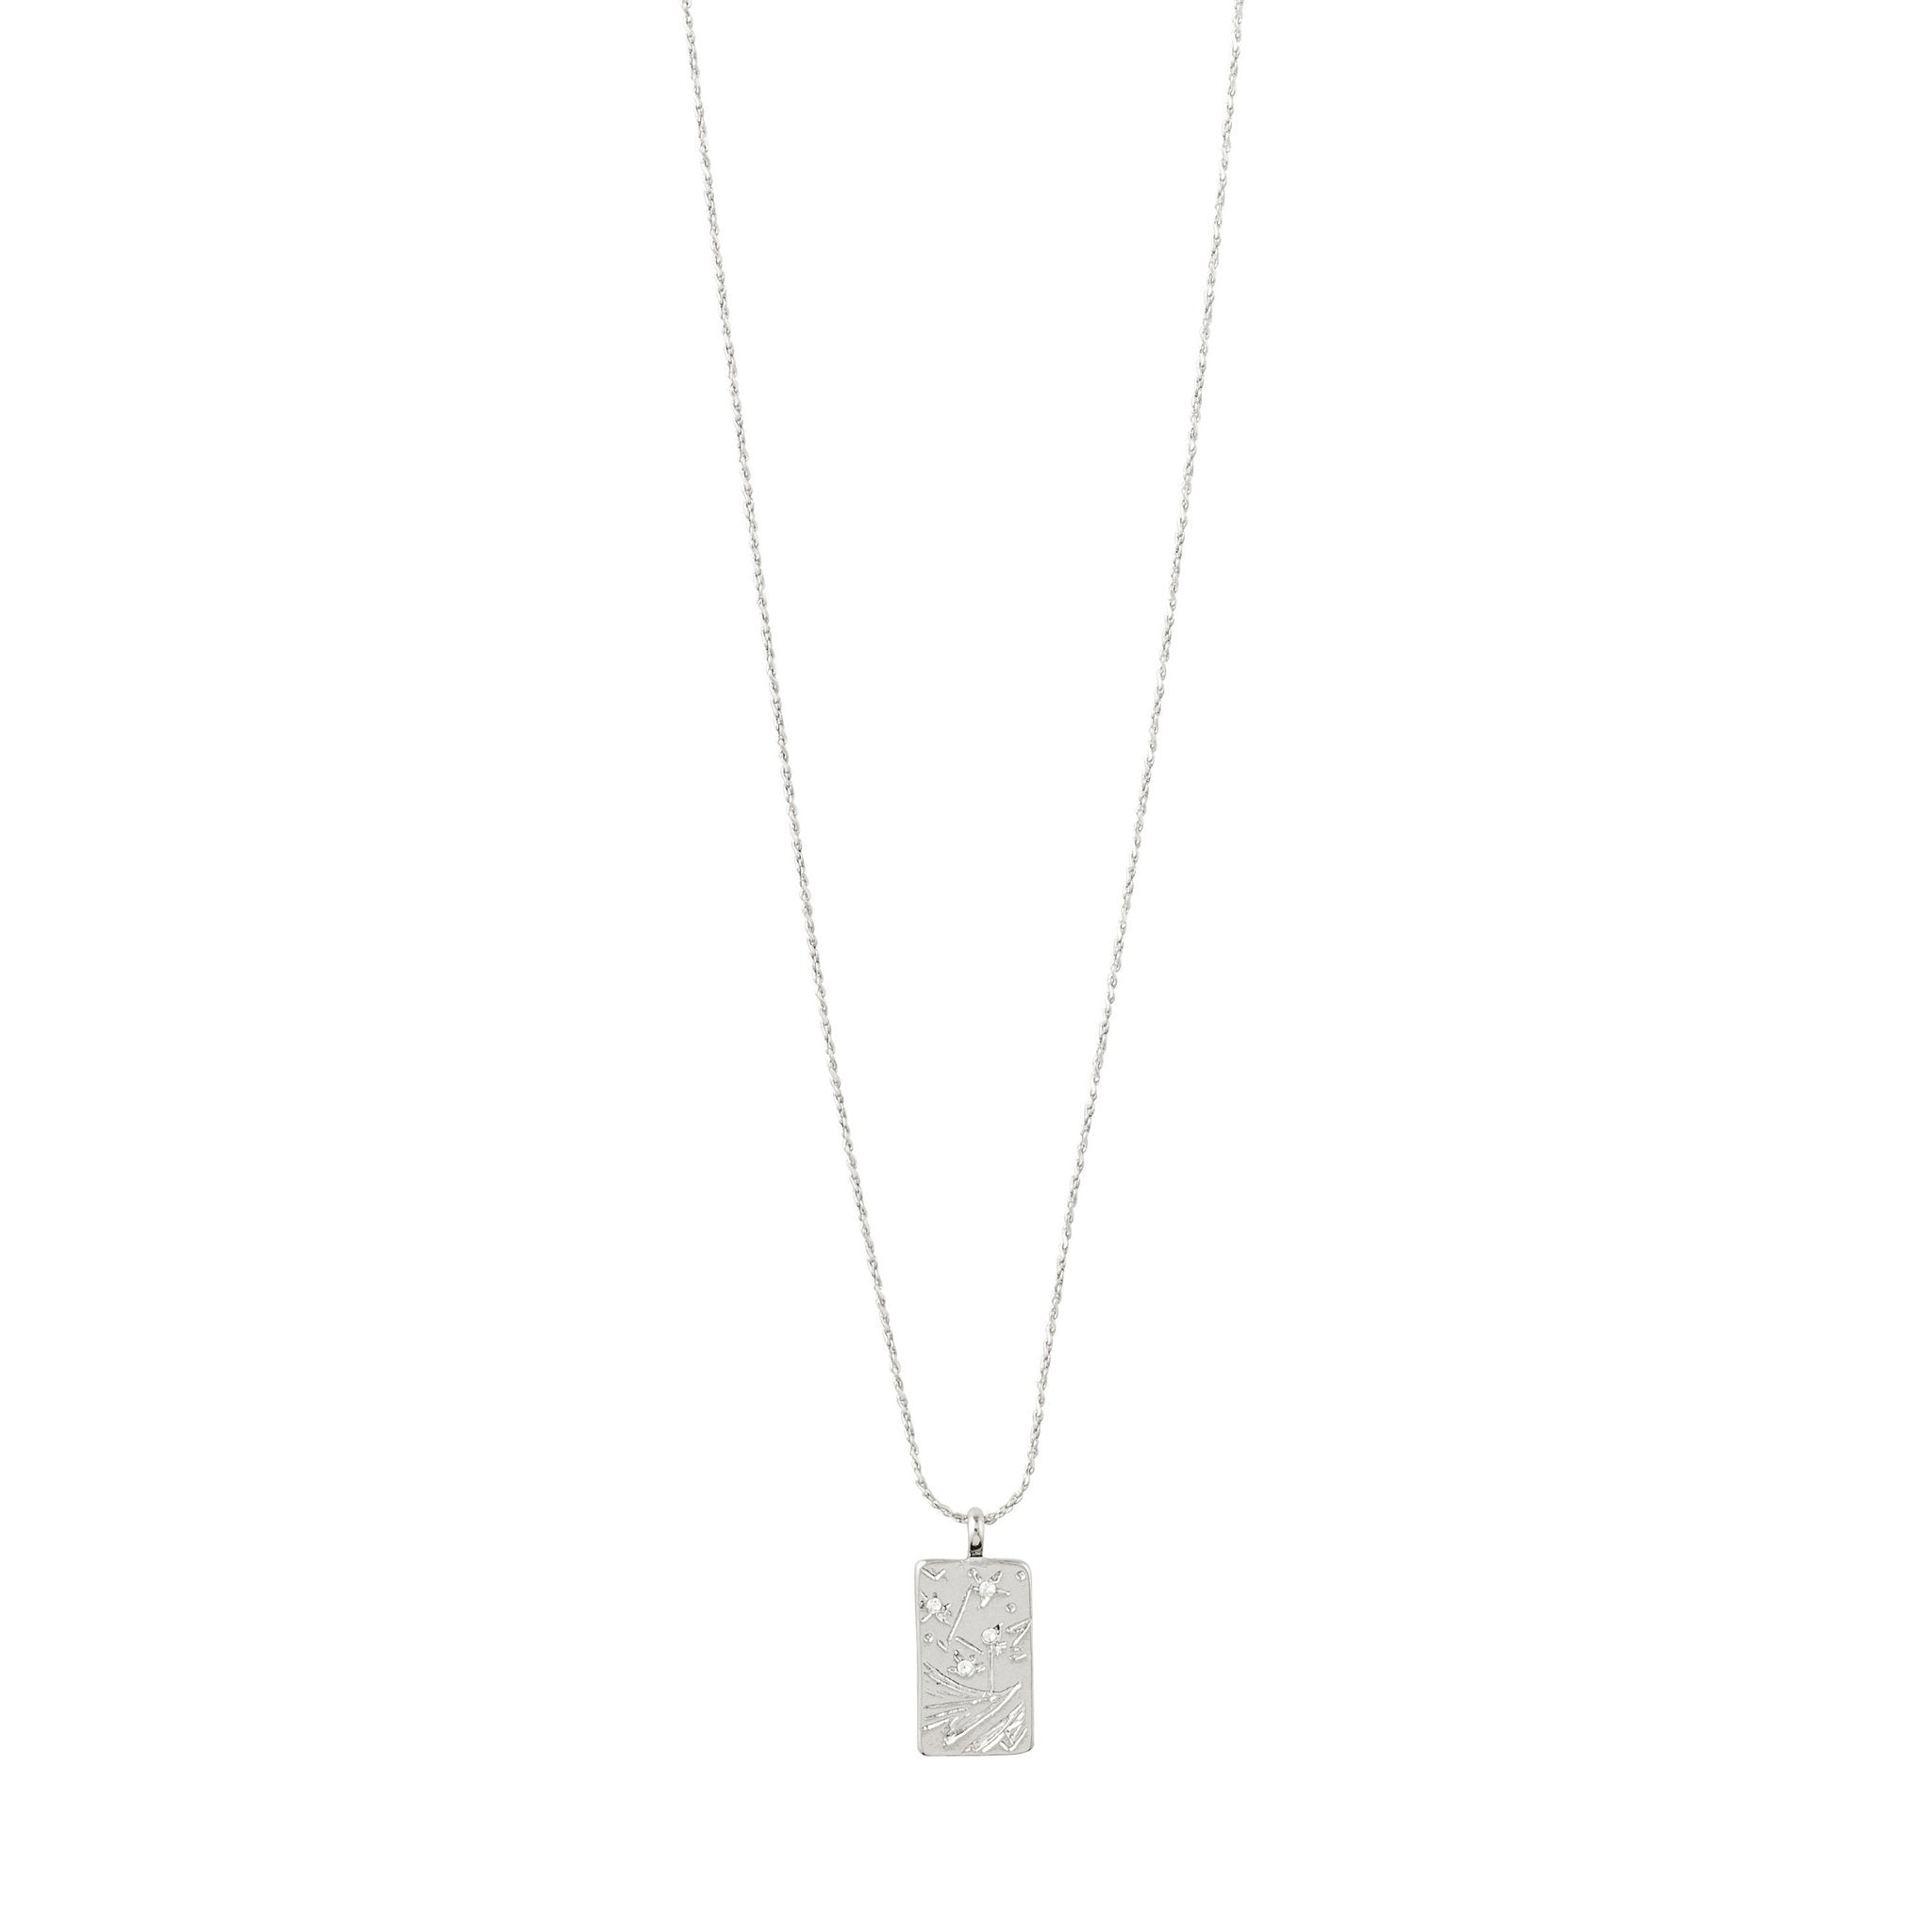 Gracefulness Necklace - Silver